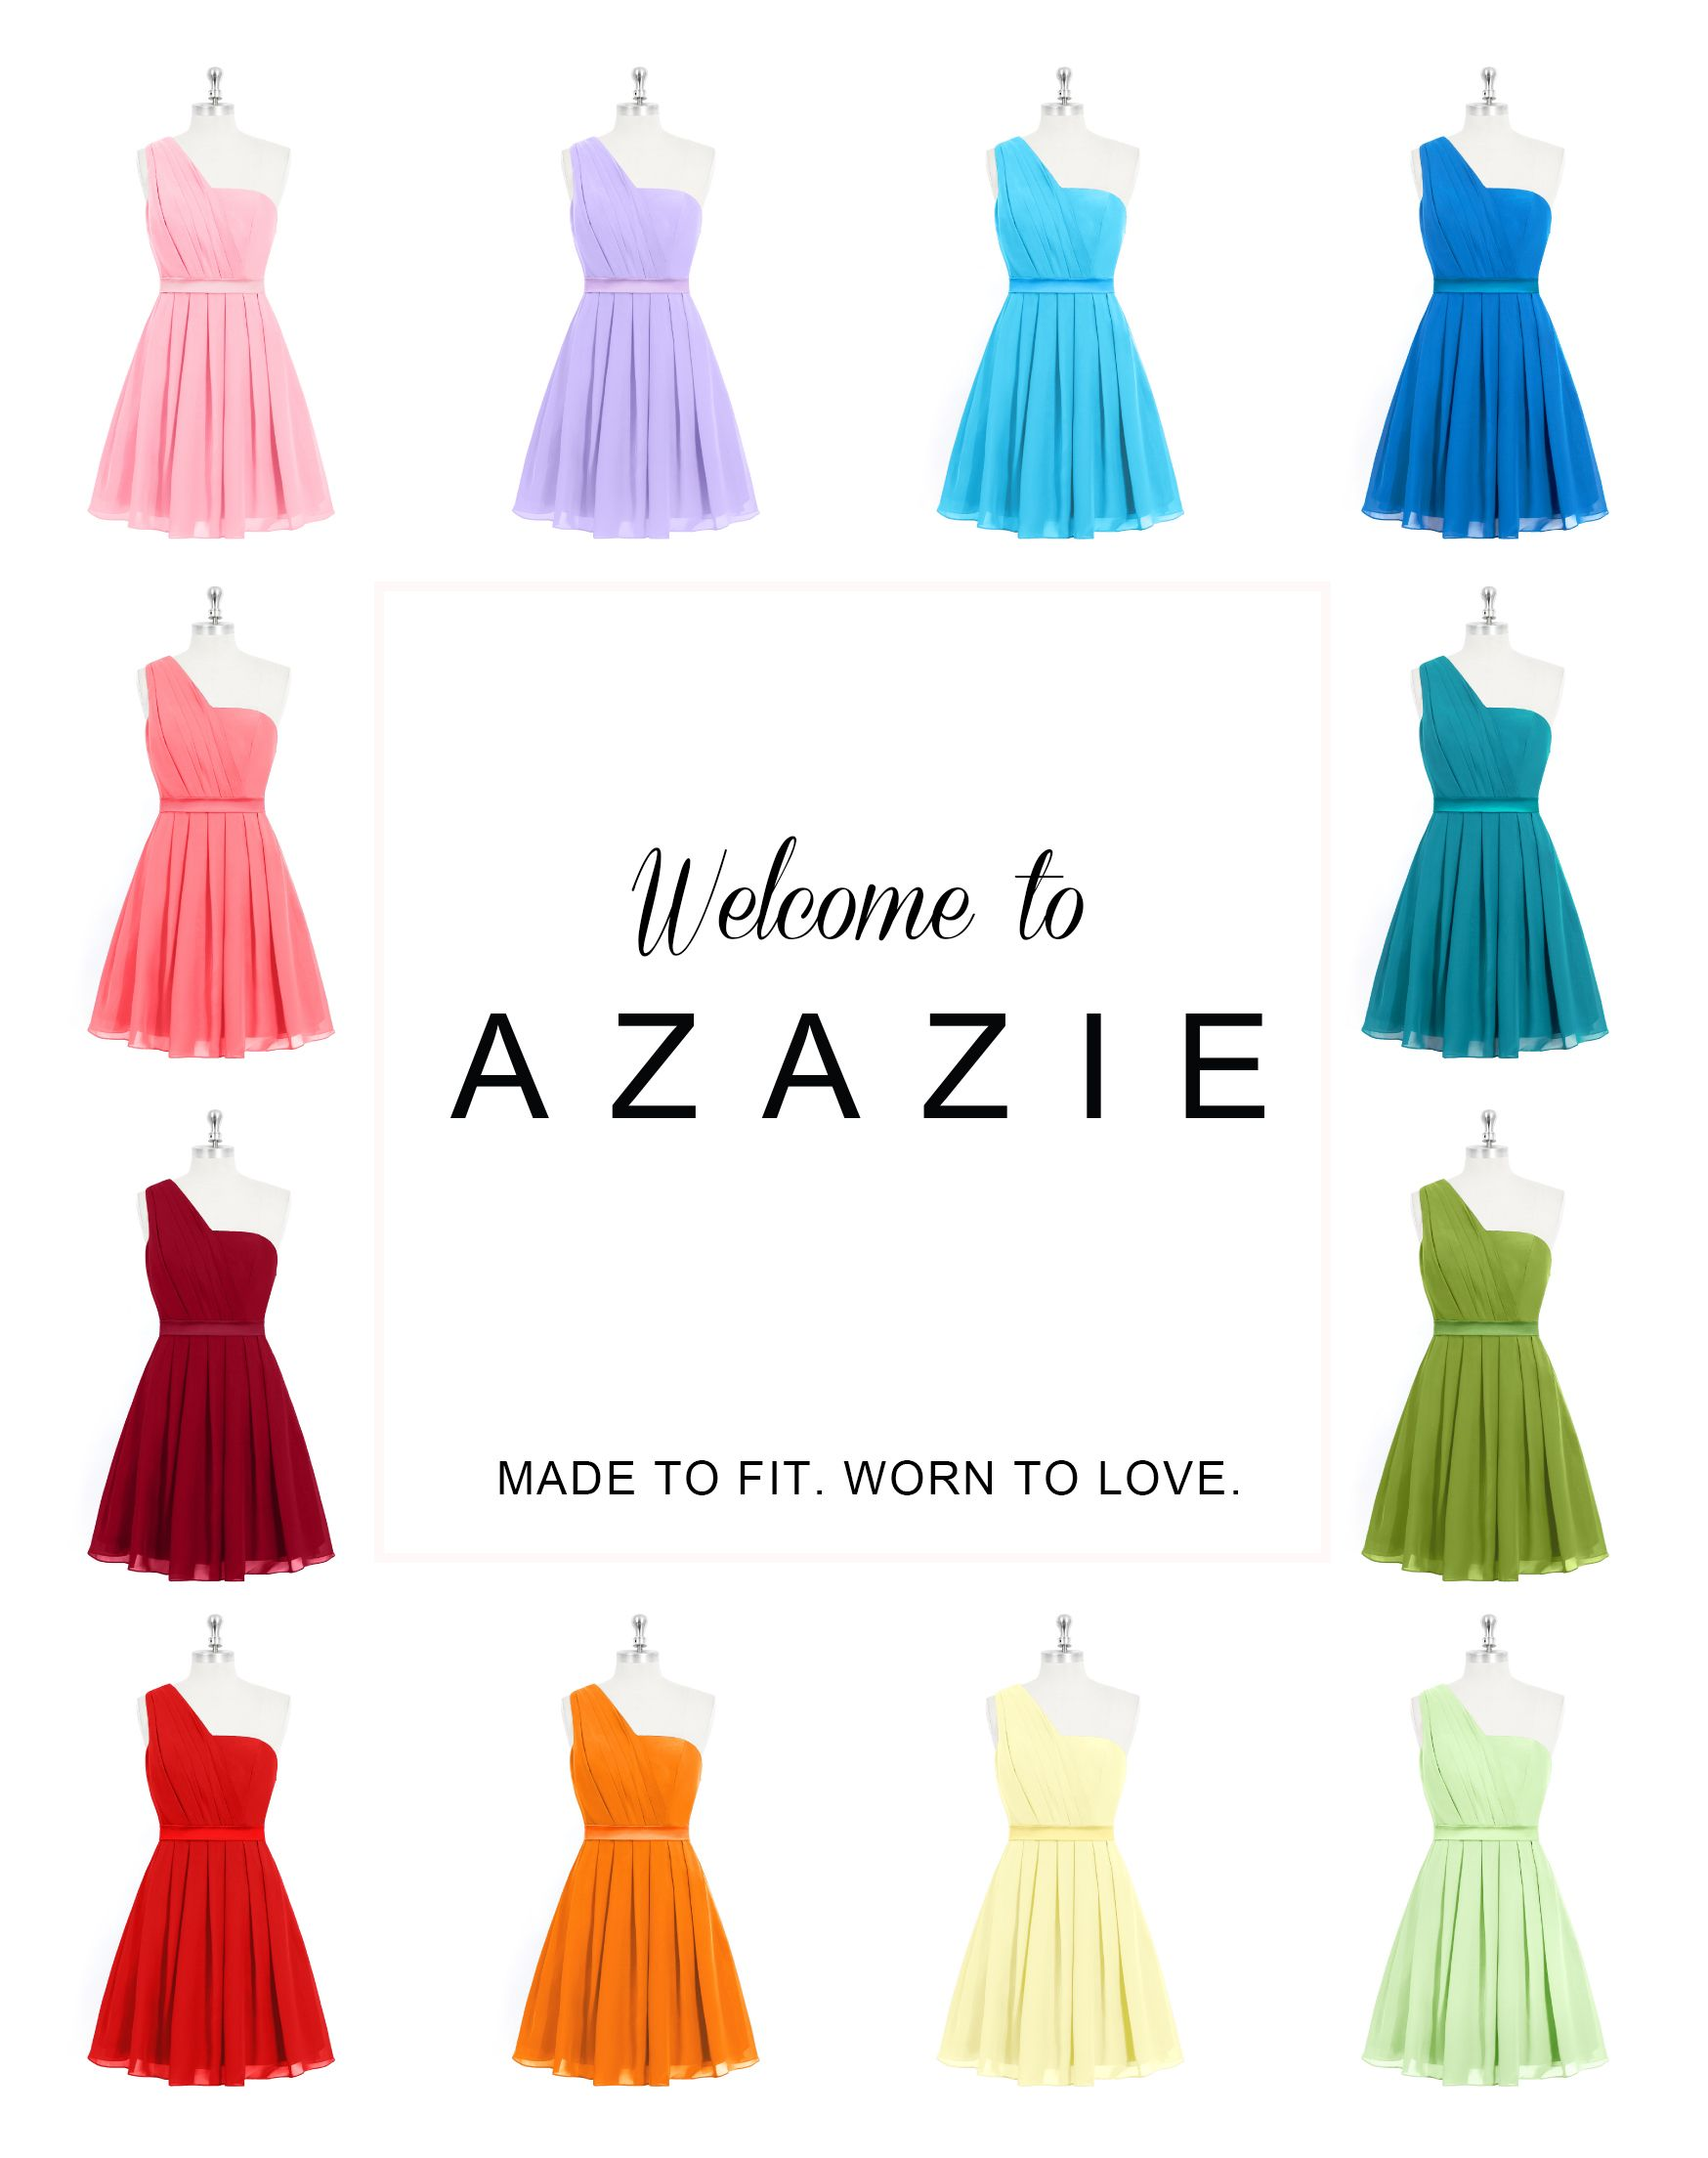 Based in san francisco azazie is the only online bridal boutique some great wedding dresses for small beach weddings azazie is the online destination for special occasion dresses our online boutique connects bridesmaids ombrellifo Gallery